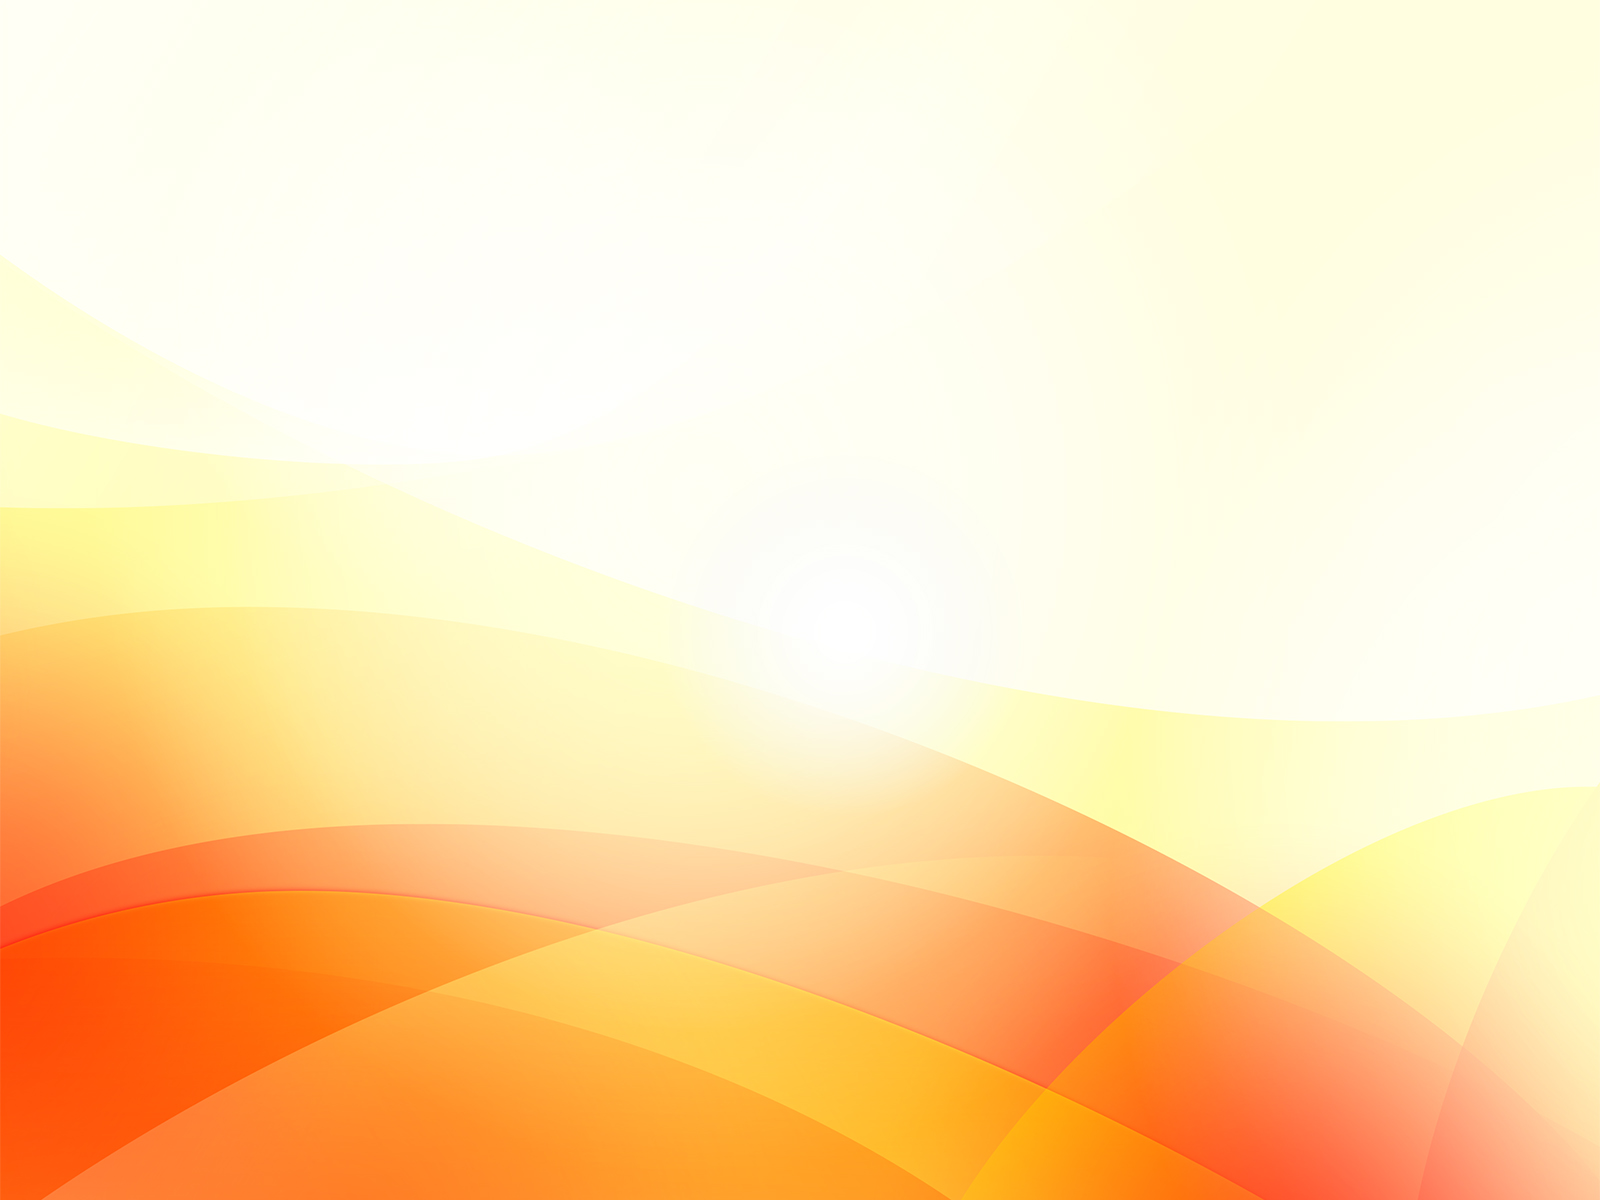 Orange Waves Ppt Backgrounds Abstract Orange White